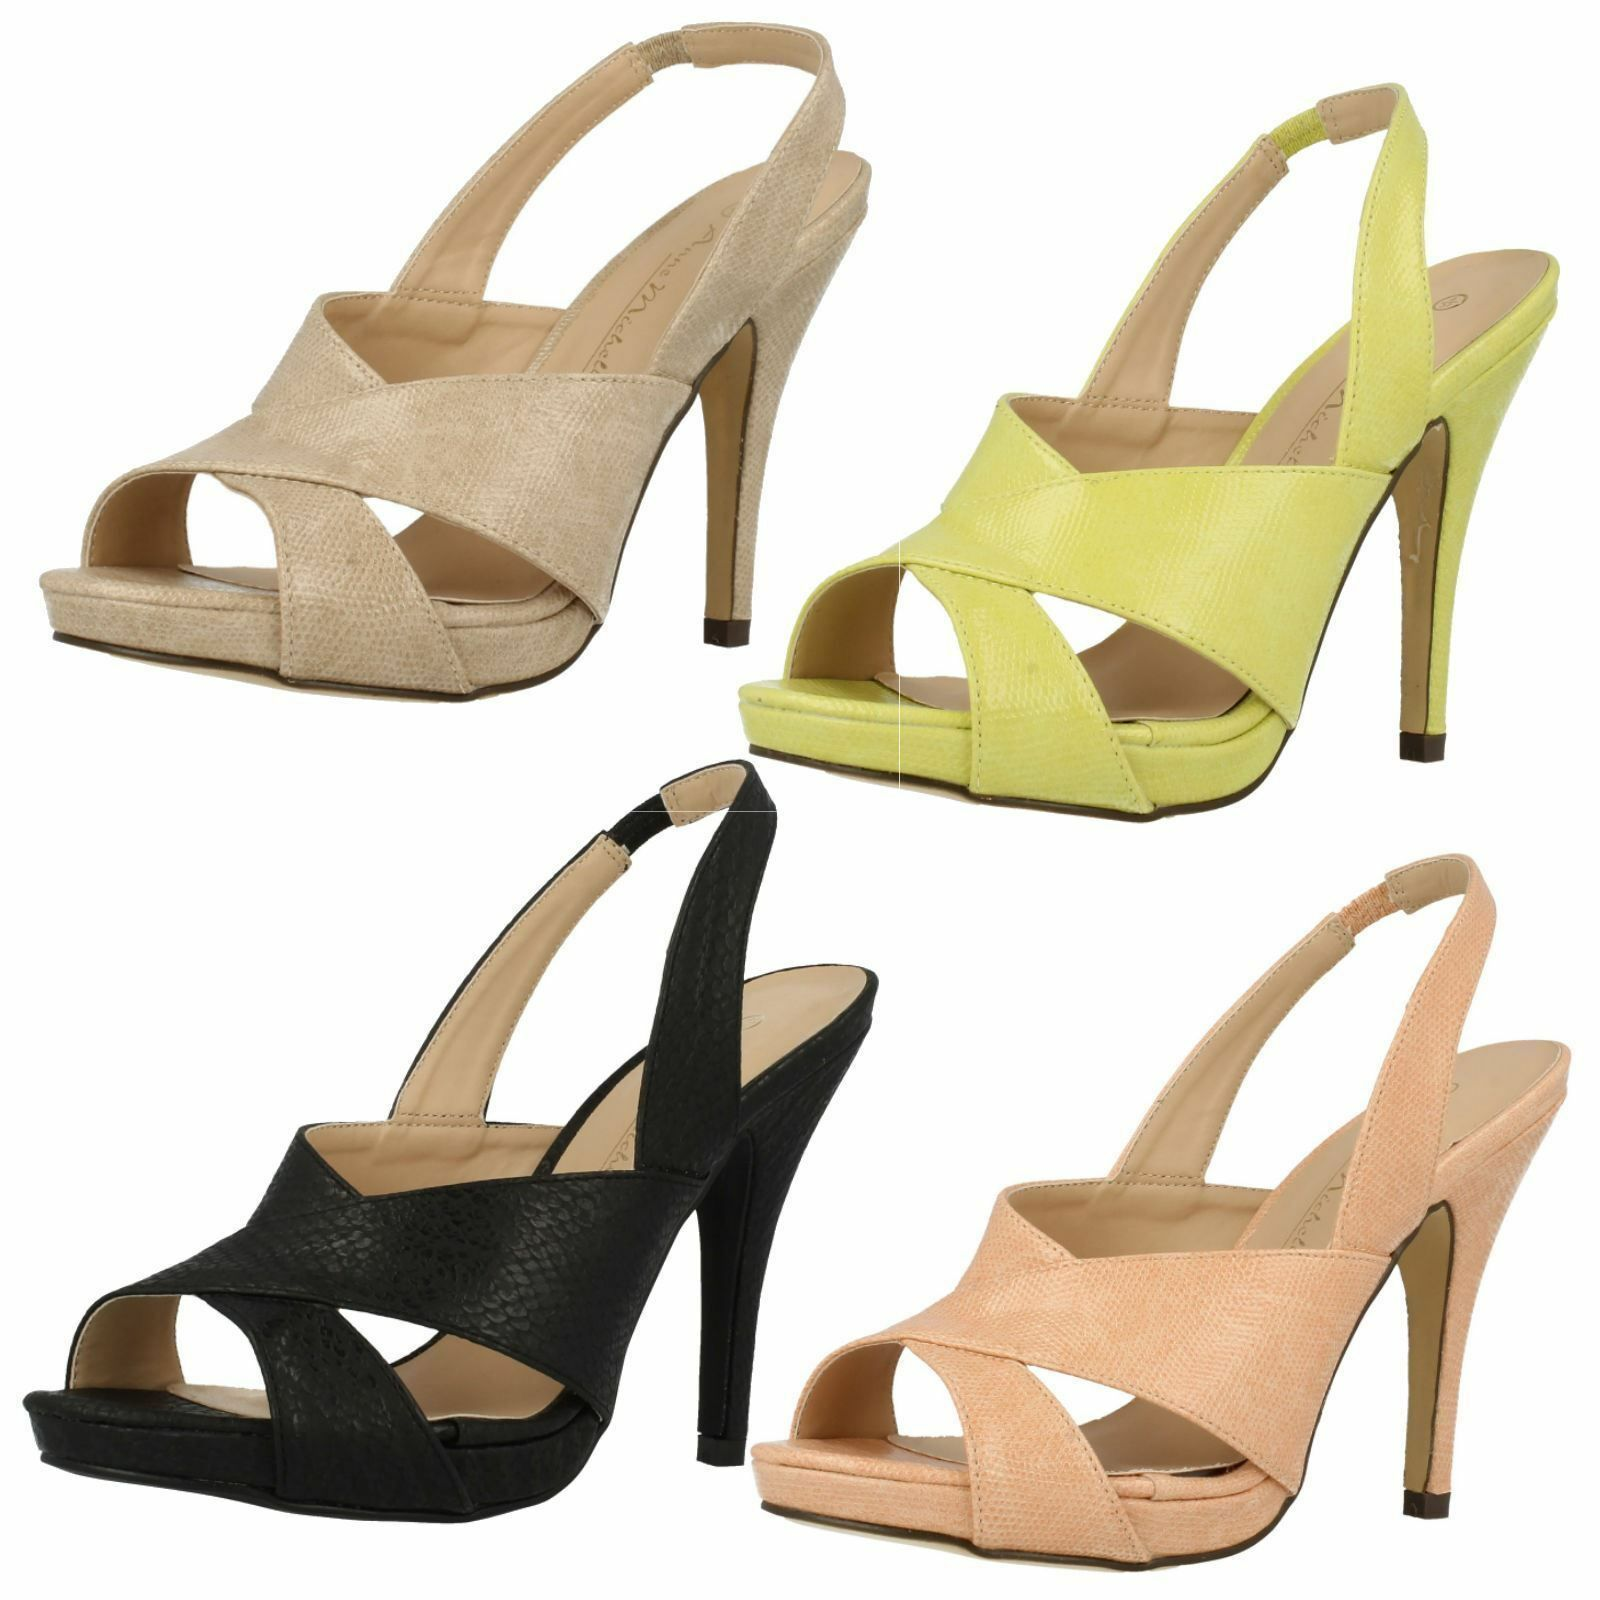 Ladies F10411 synthetic high heeled sandal by Anne Michelle SALE £9.99